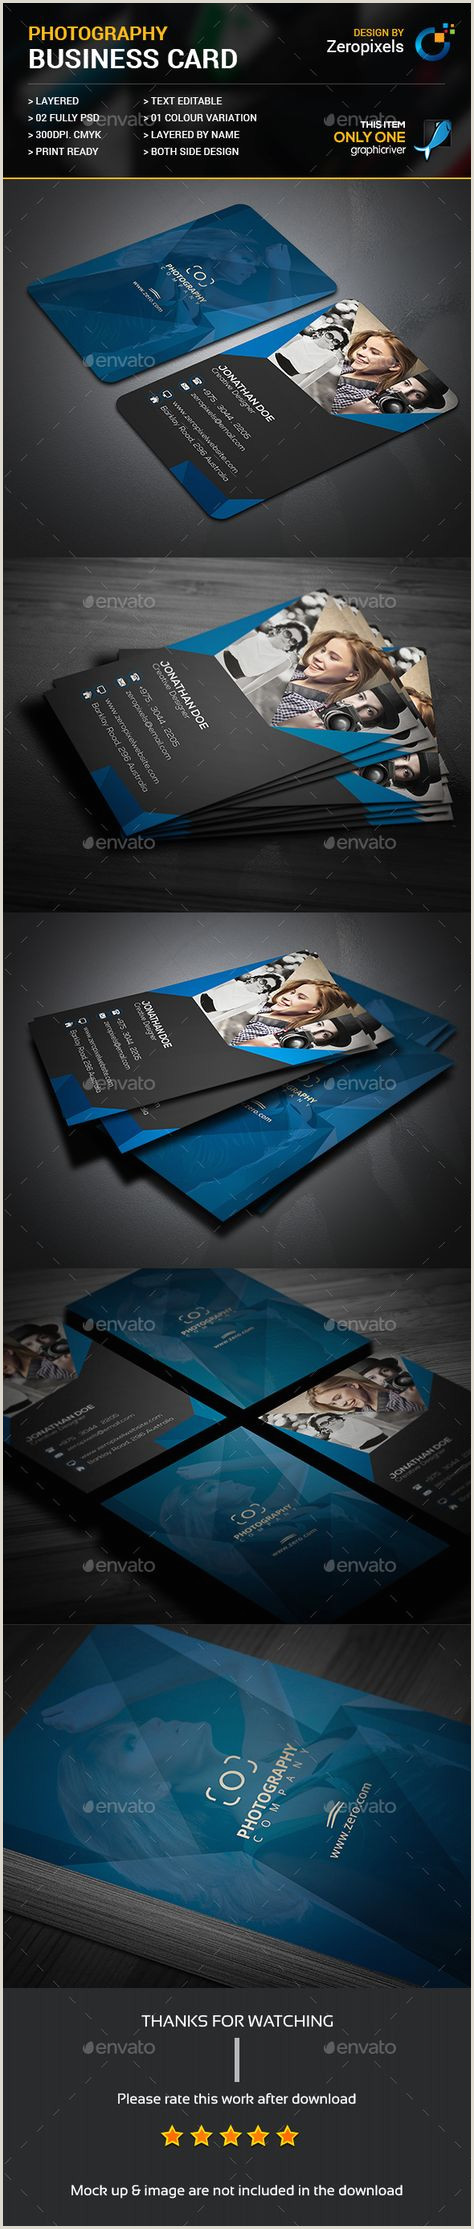 Photography Business Cards Ideas Graphy Business Cards Template Free 70 Trendy Ideas